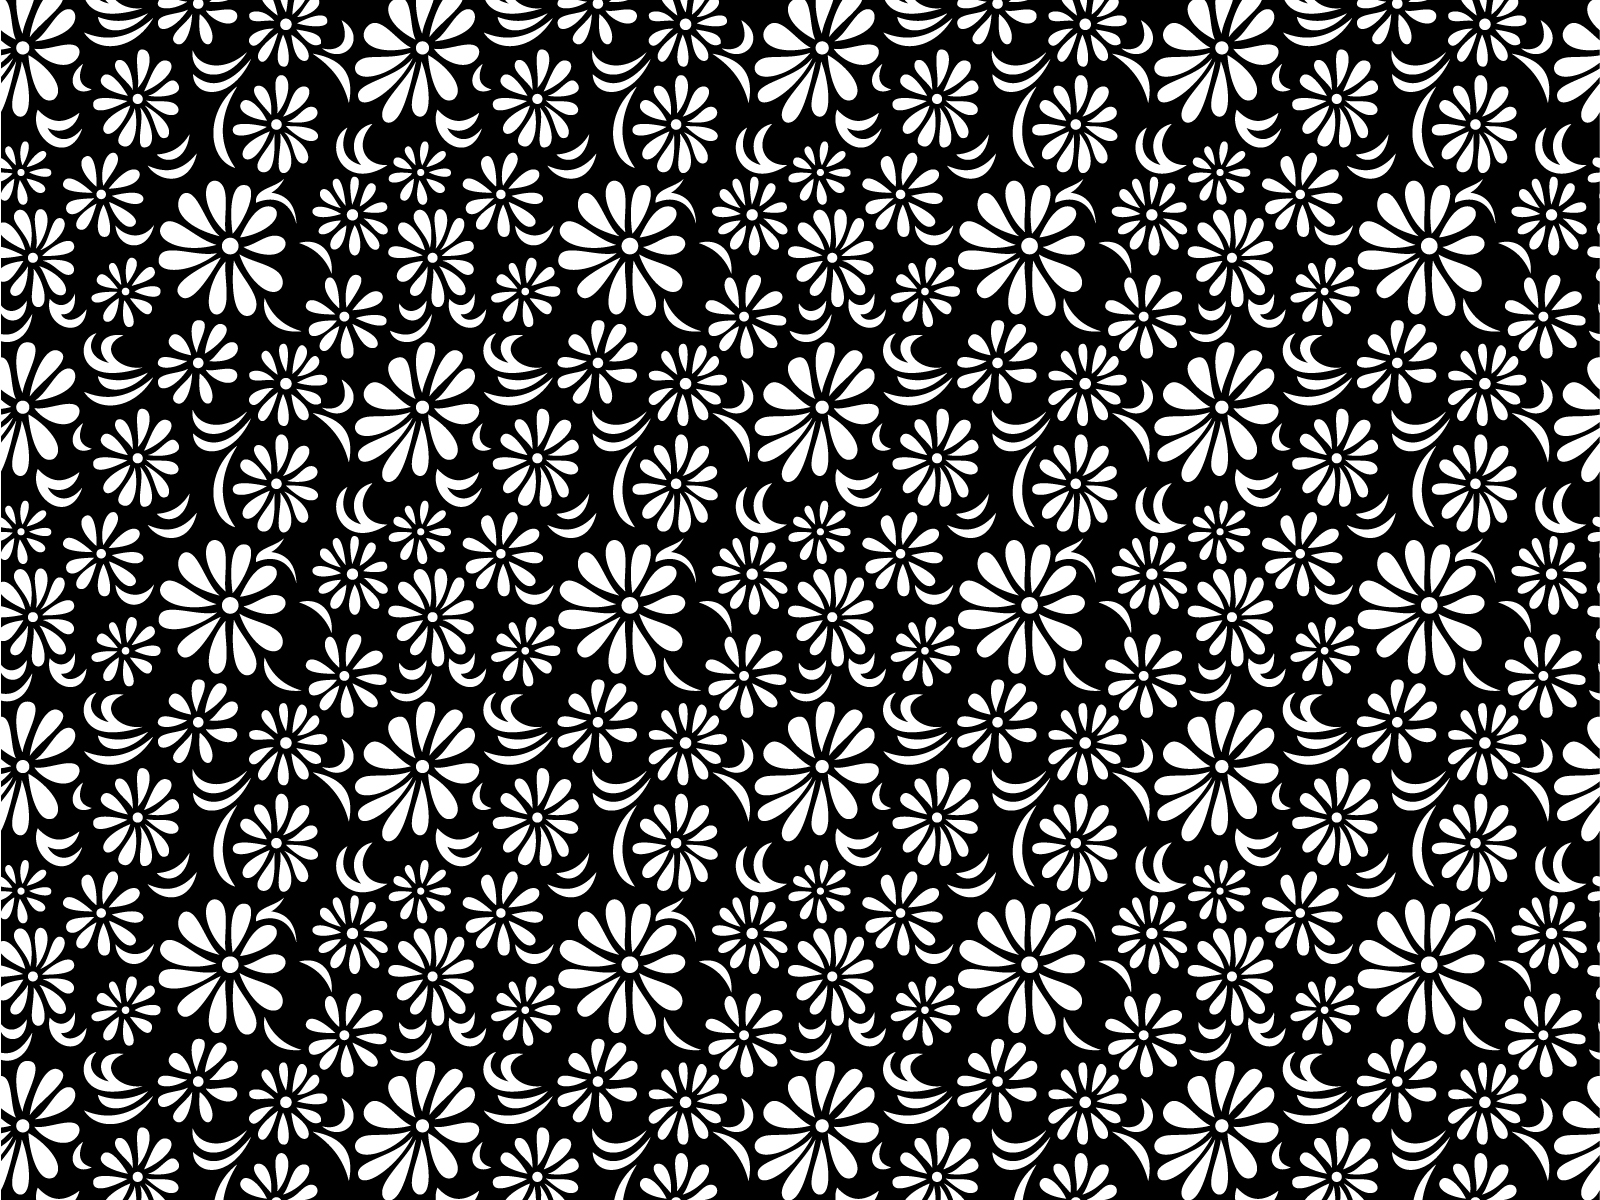 Black and White Floral Wallpaper Desktop h752080 1600x1200